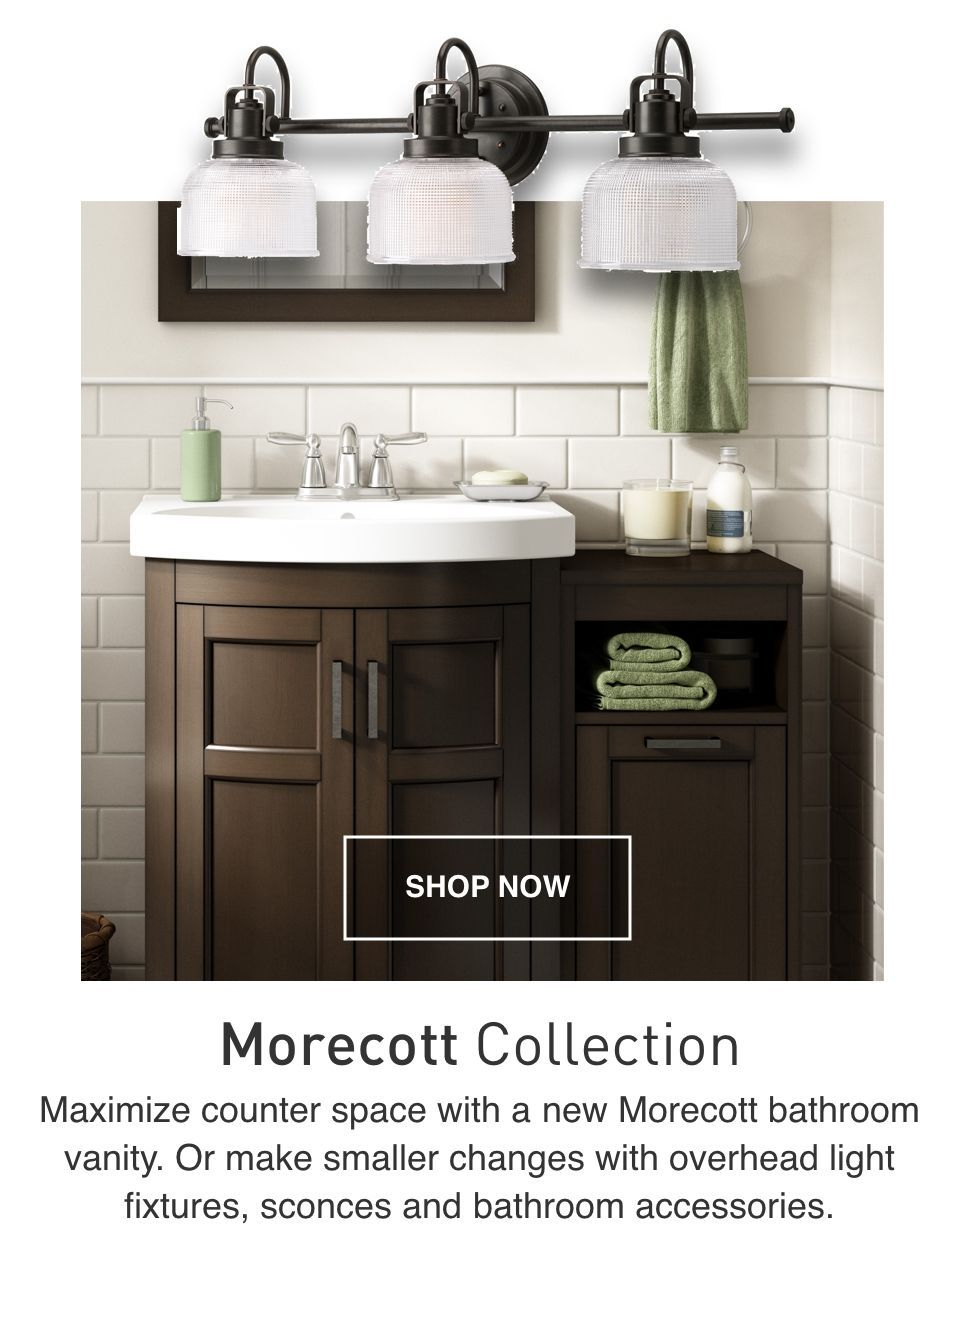 The Morecott Bathroom Vanity Maximizes Counter Space Bathroom Sink Cabinets Bathroom Vanity Powder Room Sink Vanity